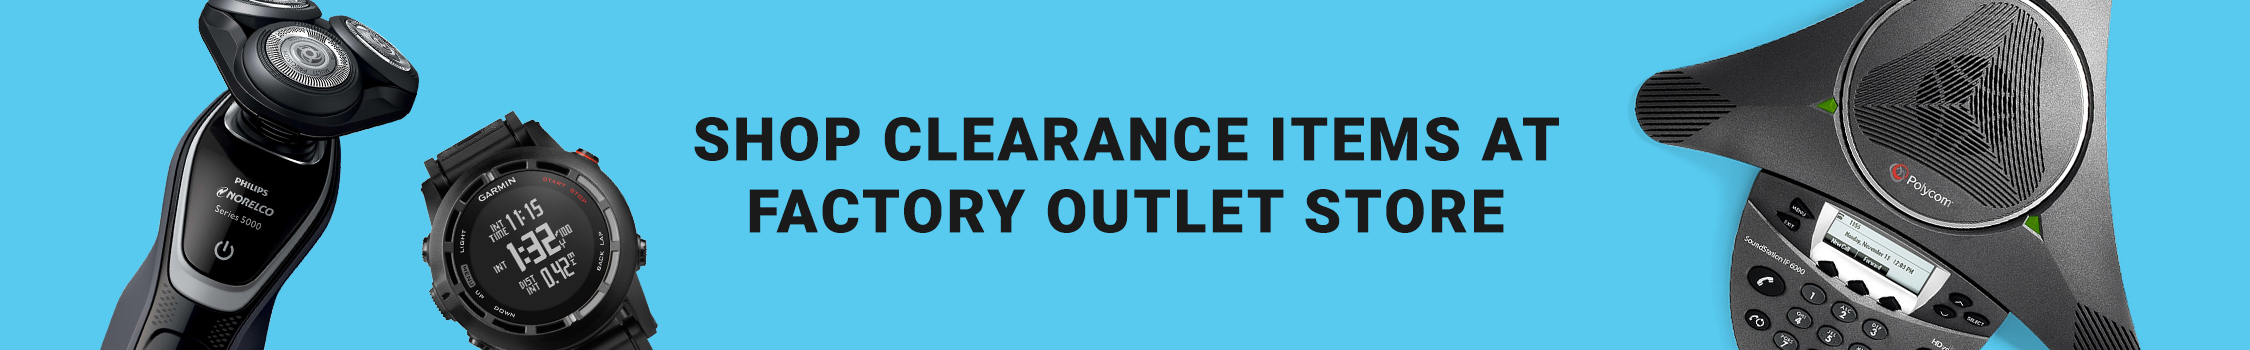 Shop Clearance items at Factory Outlet Store